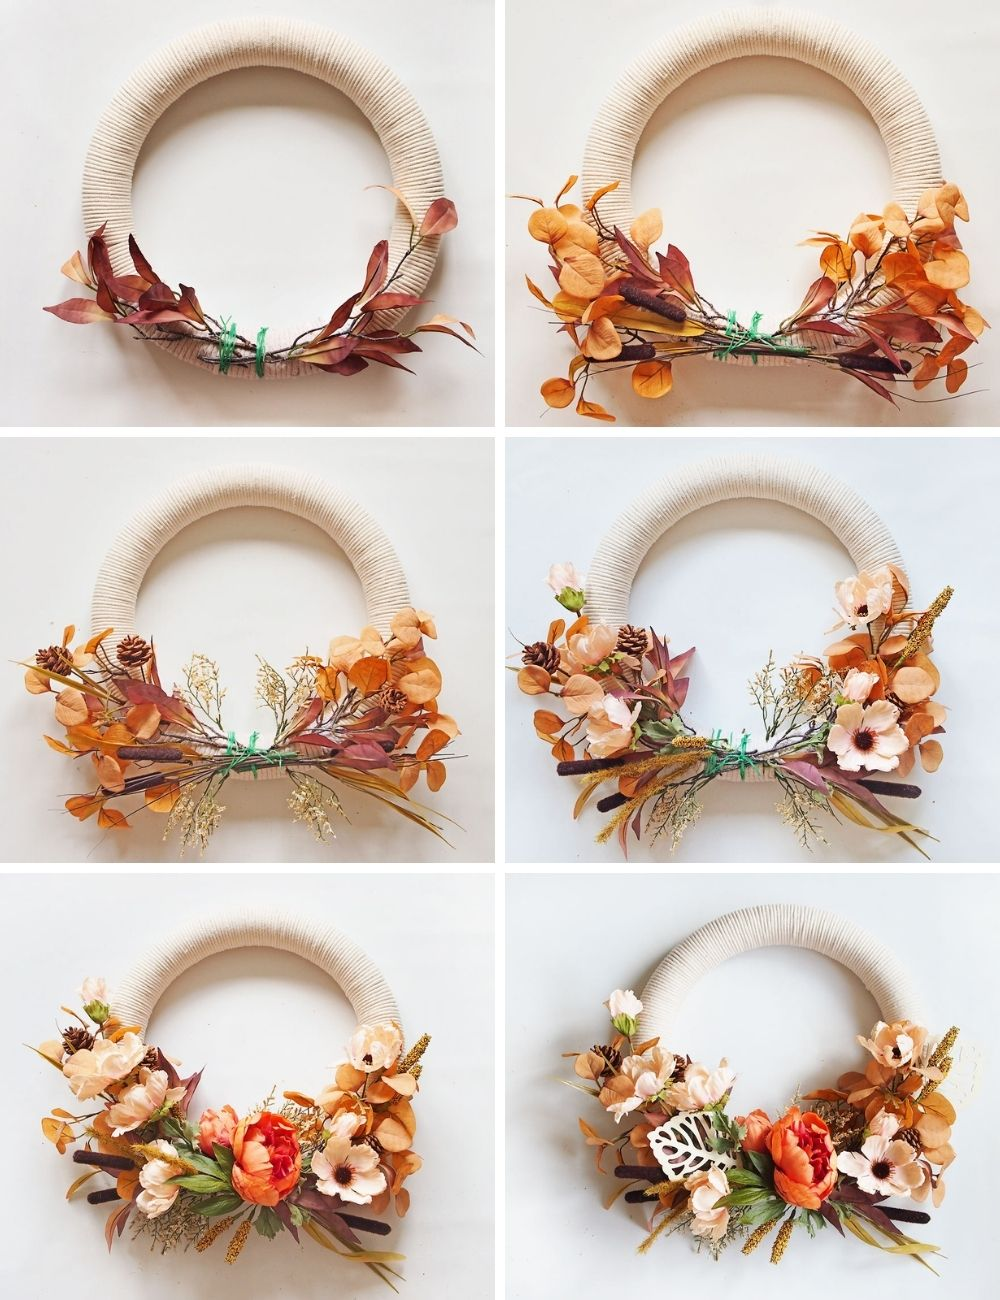 Fall Cotton Rope Wreath DIY - step by step